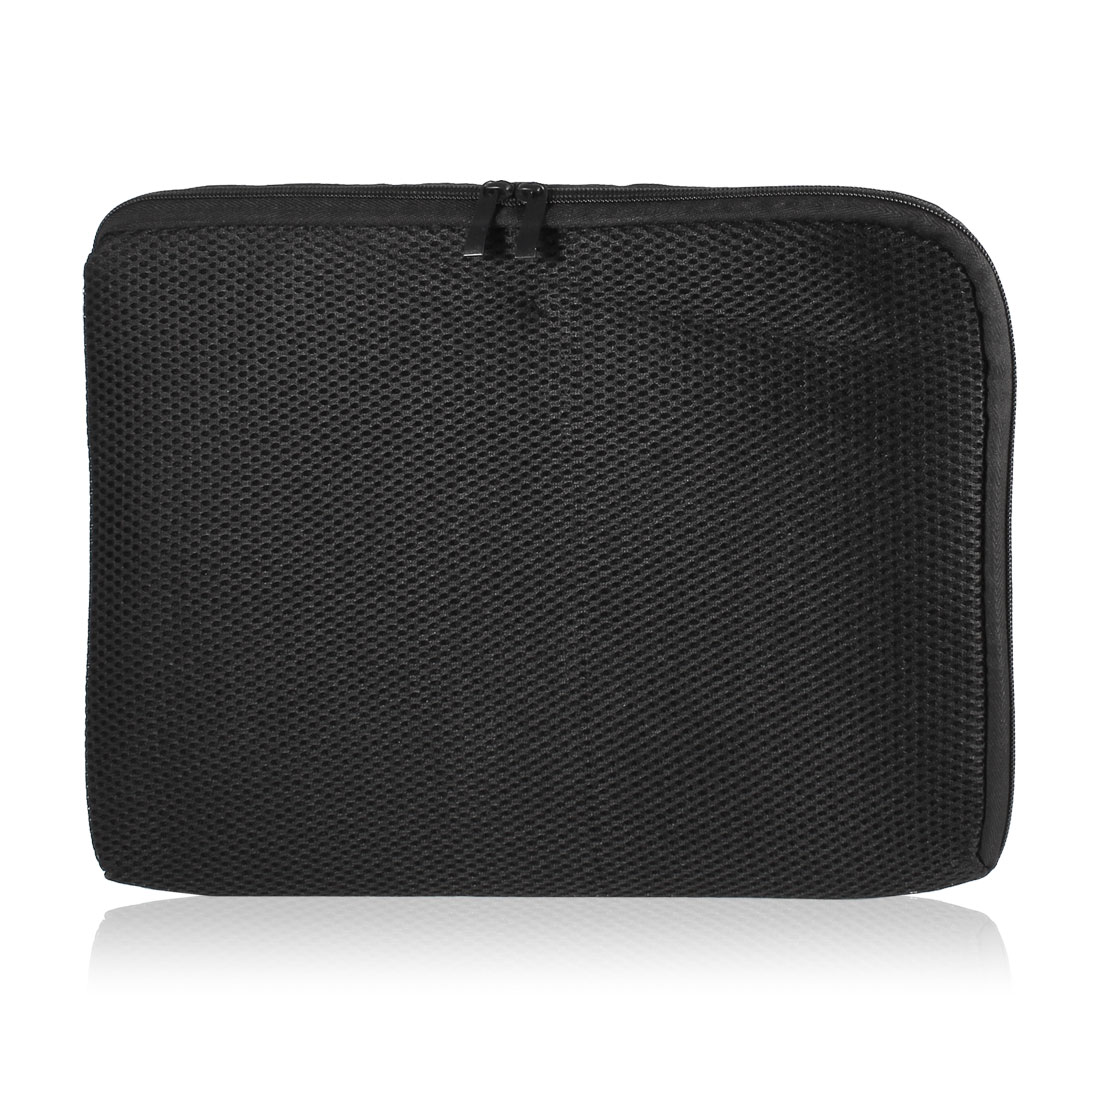 """Unique Bargains 13"""" 13.3"""" Notebook Laptop Dual Zipper Sleeve Bag Case for Dell Samsung Asus at Sears.com"""